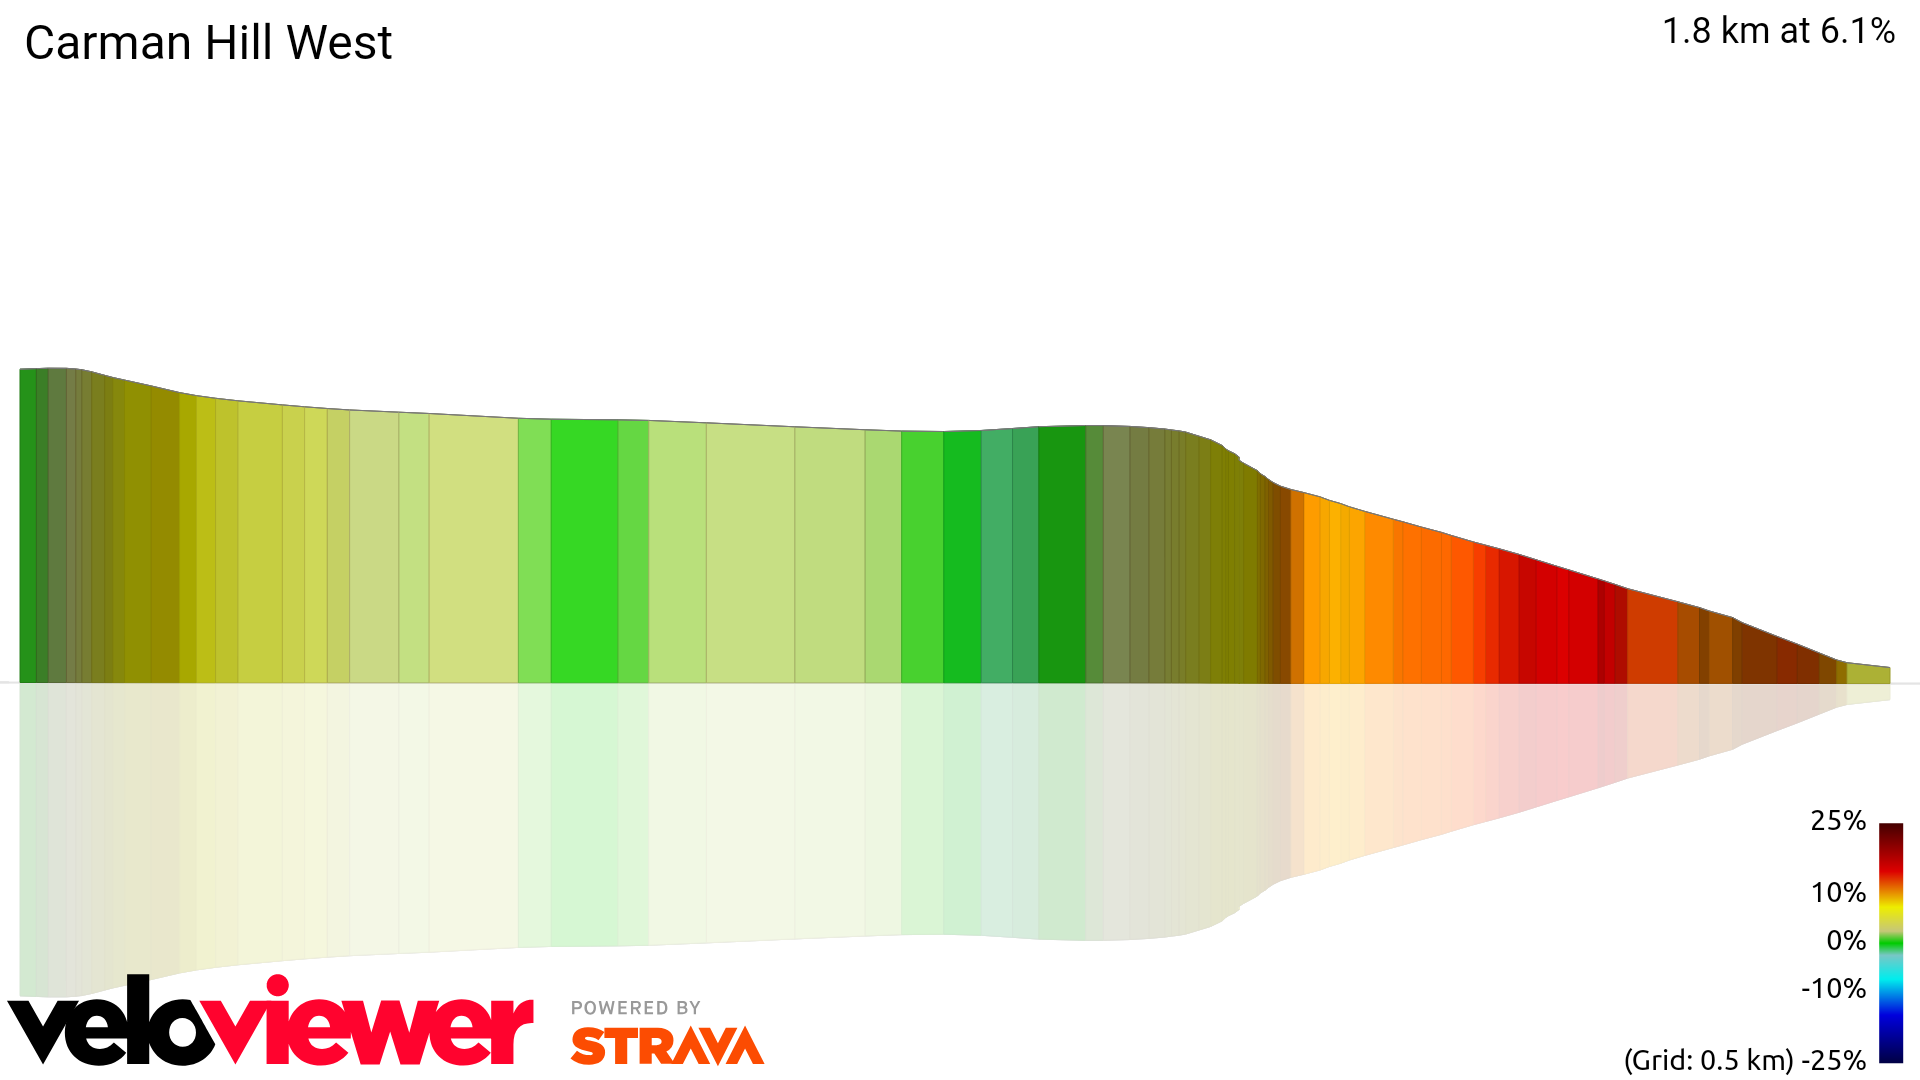 3D Elevation profile image for Carman Hill West